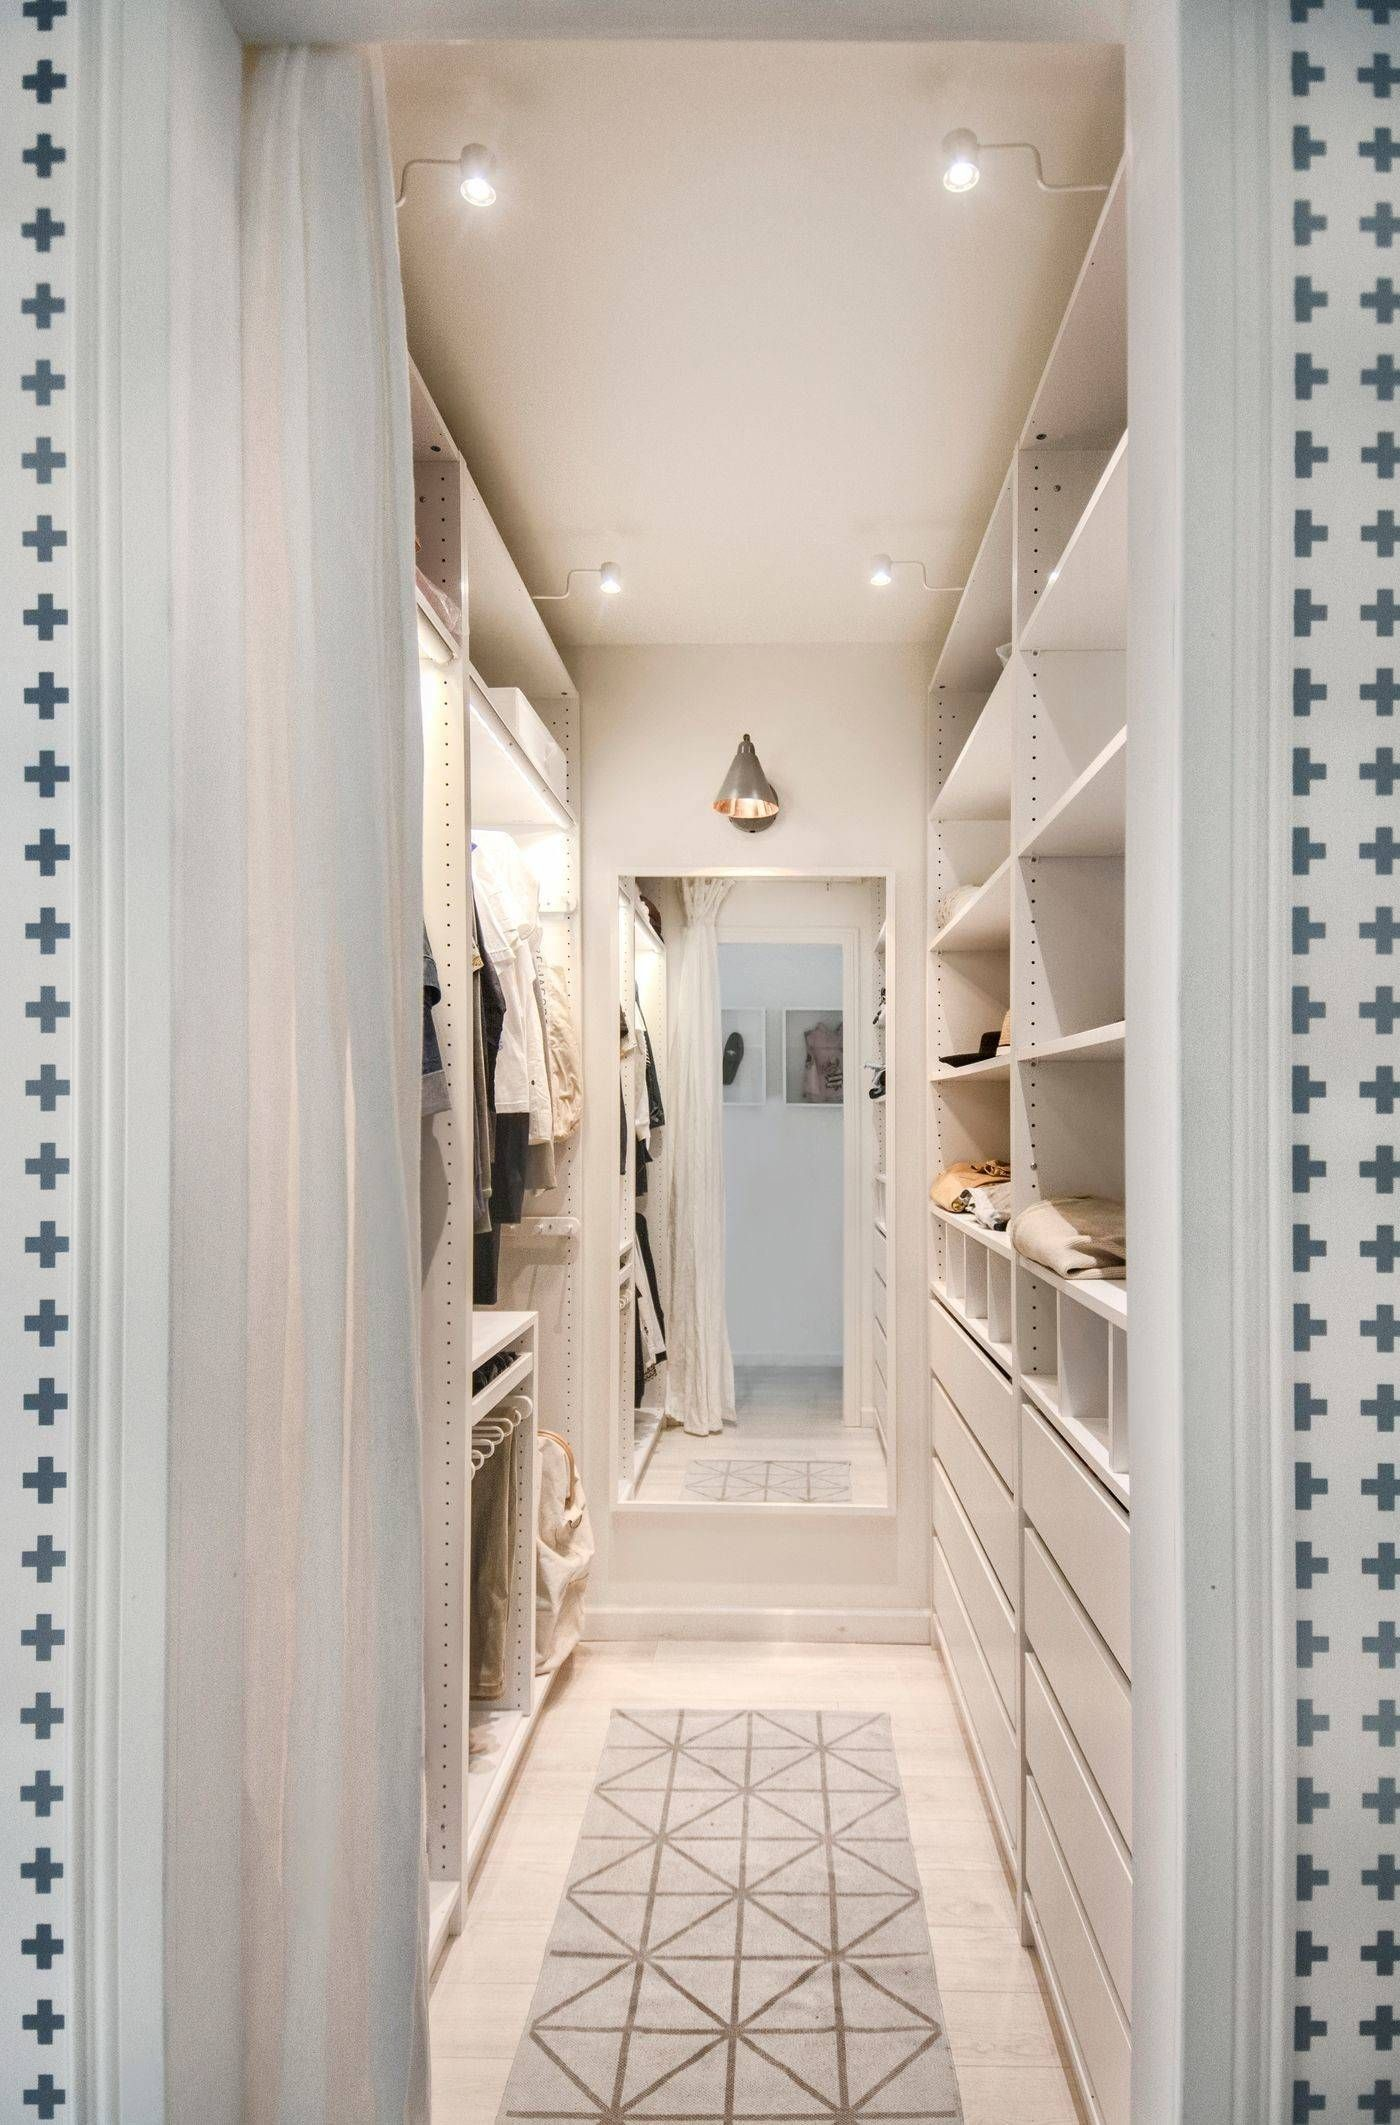 31 Great Walk-In Closet Ideas | Decoration, Bedrooms and Interiors